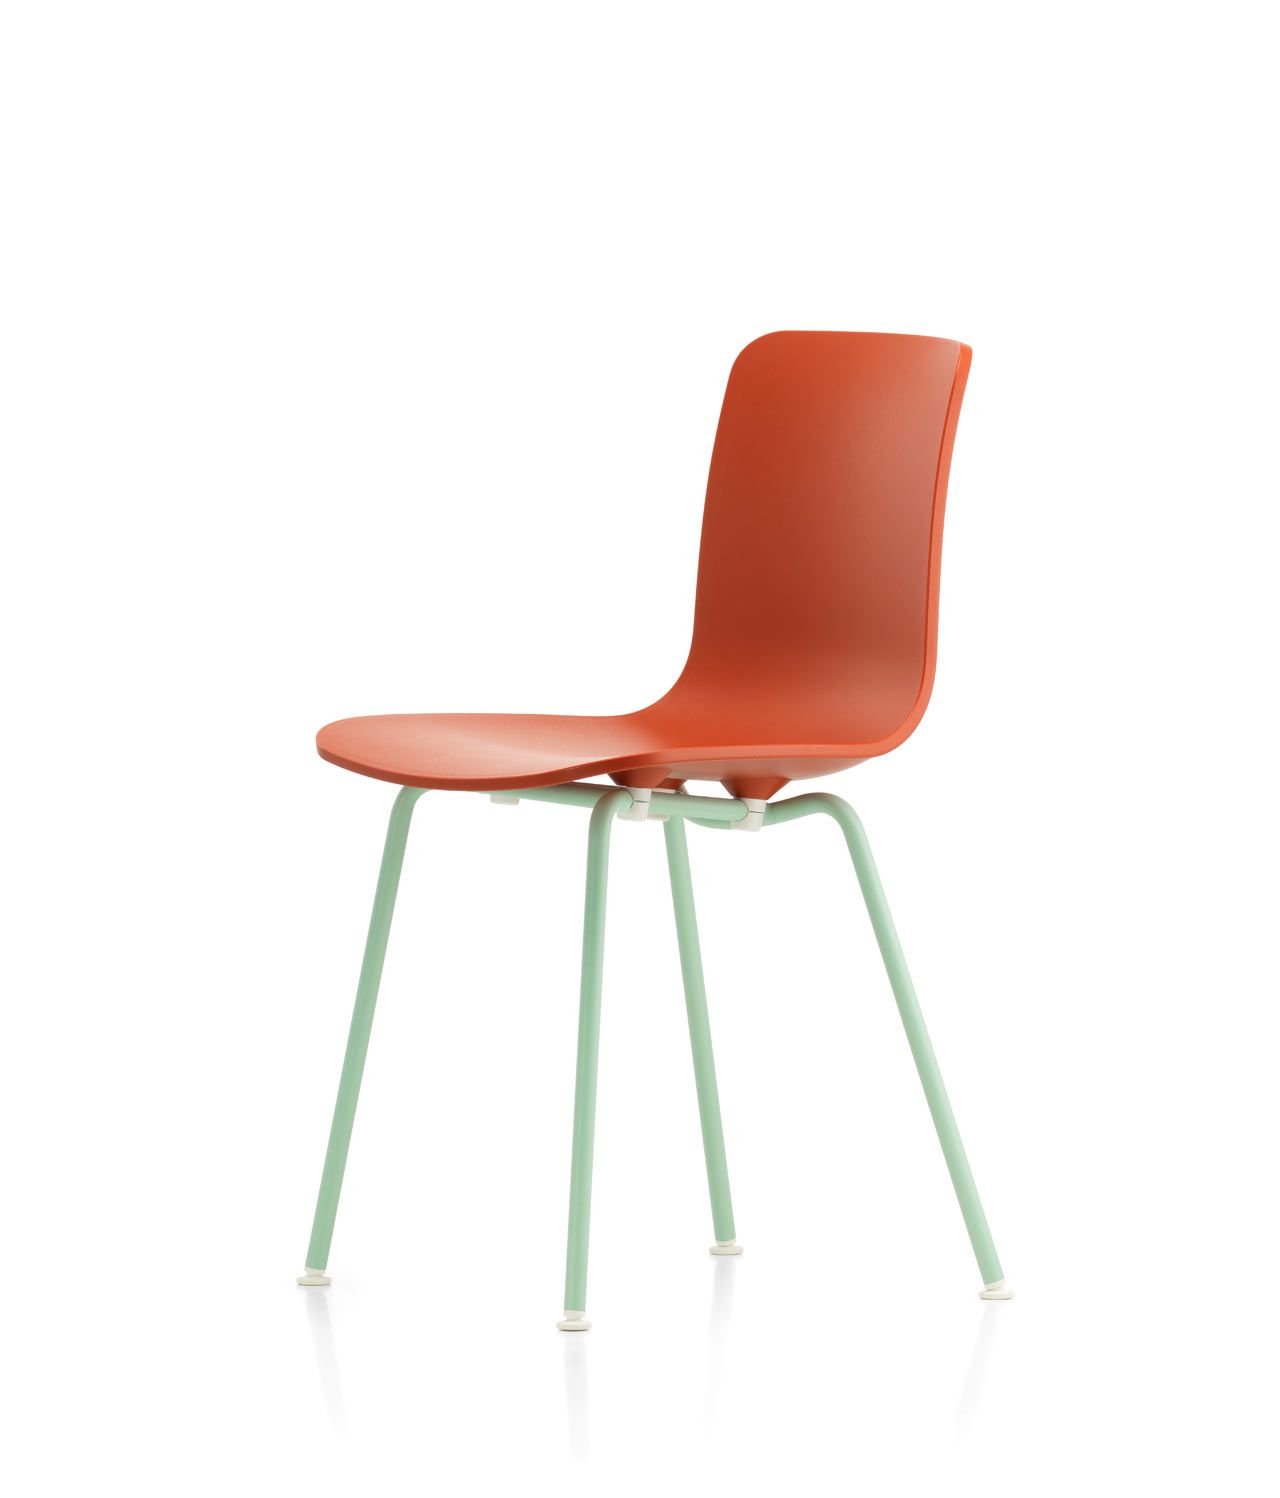 Refresh Your Patio Dining Set with Vitra's HAL Colour Tube Chairs by Jasper Morrison - Design ...